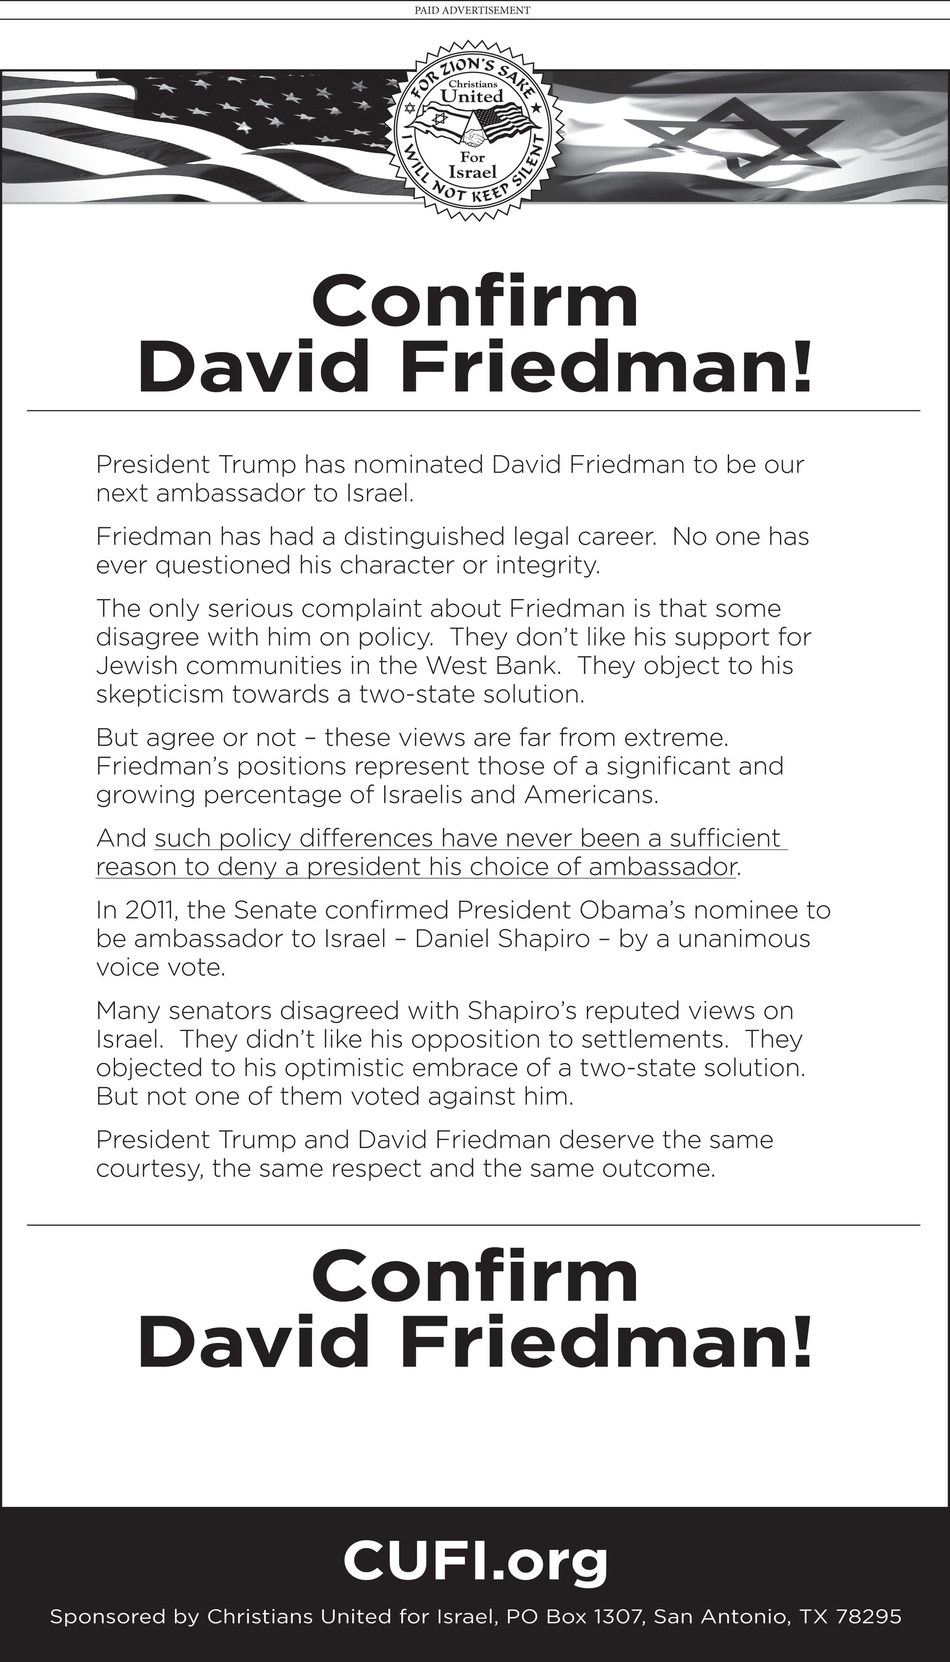 Christians United for Israel ran full page ads in The Washington Post, The Hill and Roll Call calling on senators to support Pres. Donald Trump's nominee to be the US Ambassador to Israel, David Friedman.